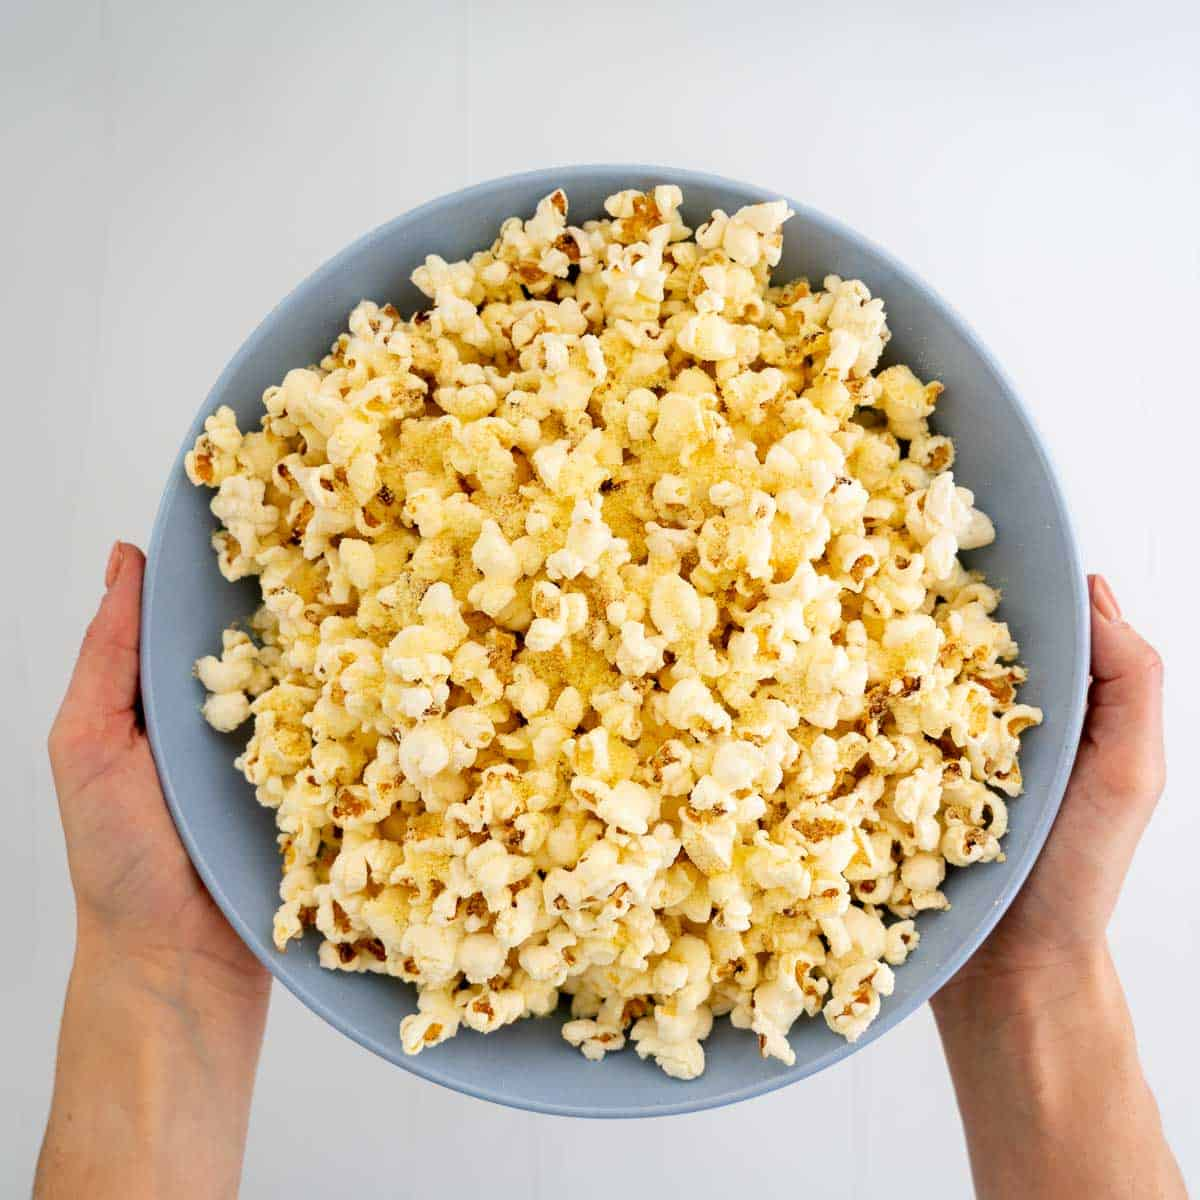 Woman's hands holding a large blue bowl filled with popcorn.